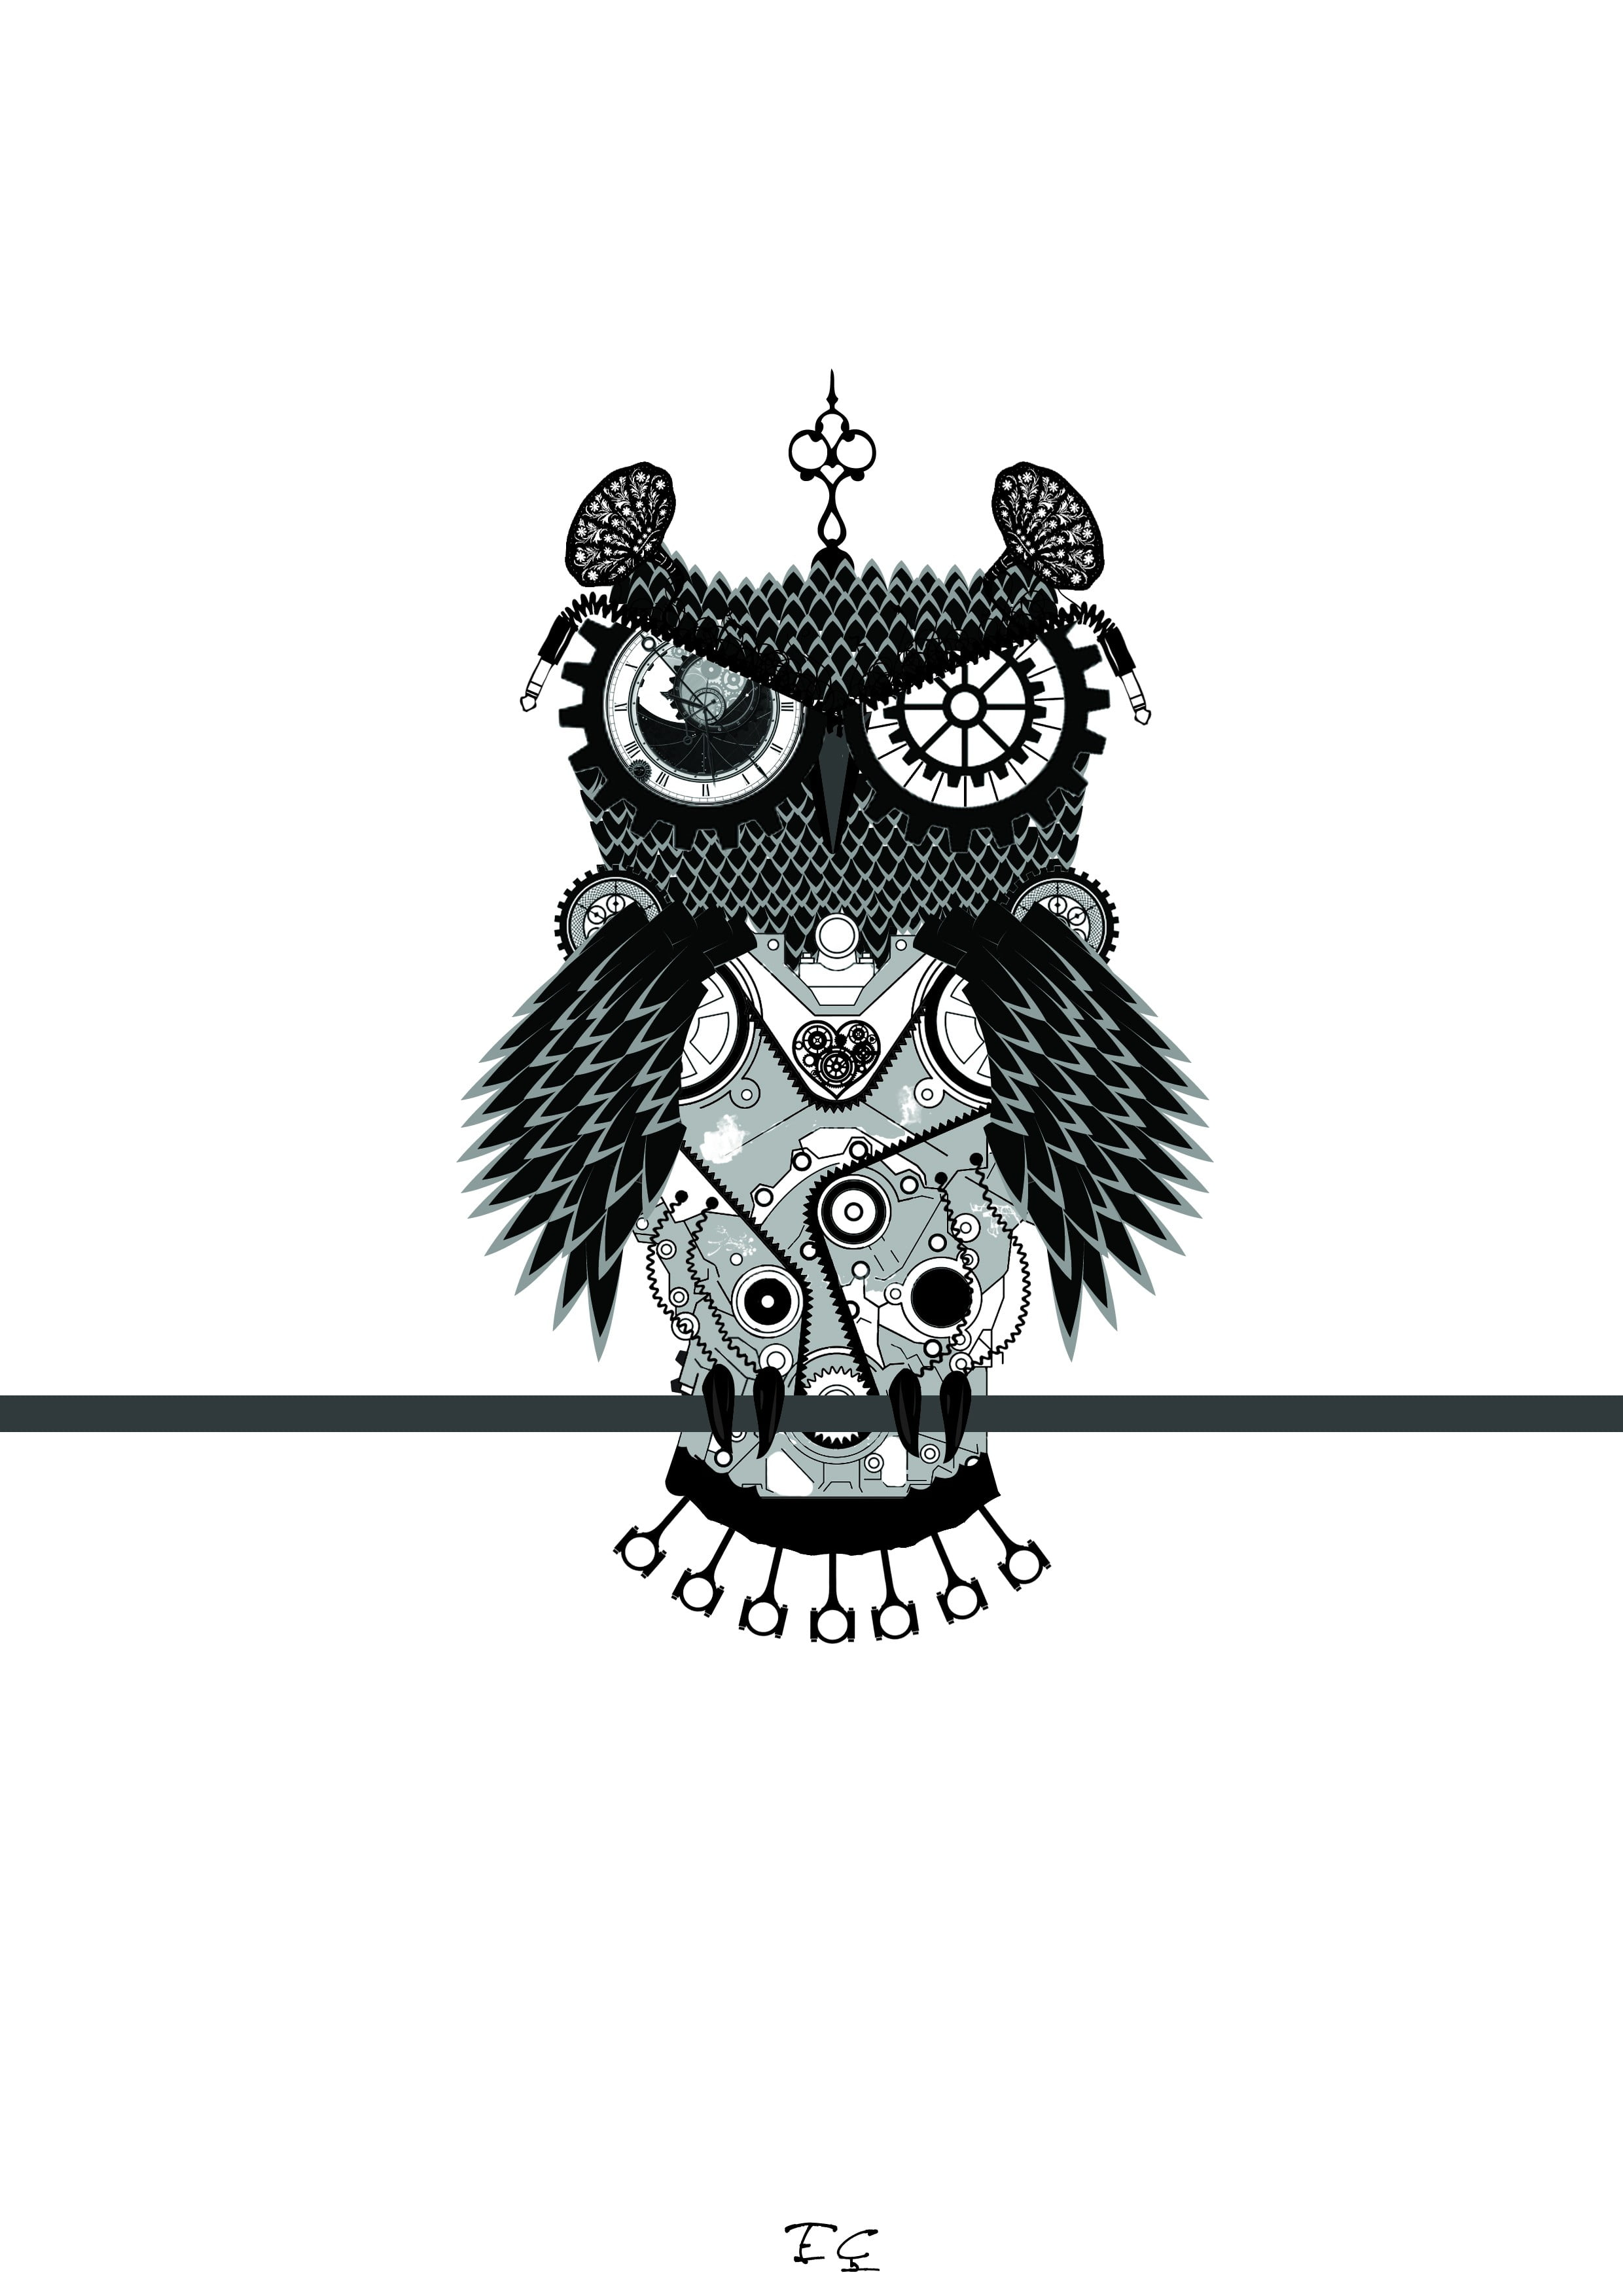 Black And White Owl Figurine Artwork Owl Abstract